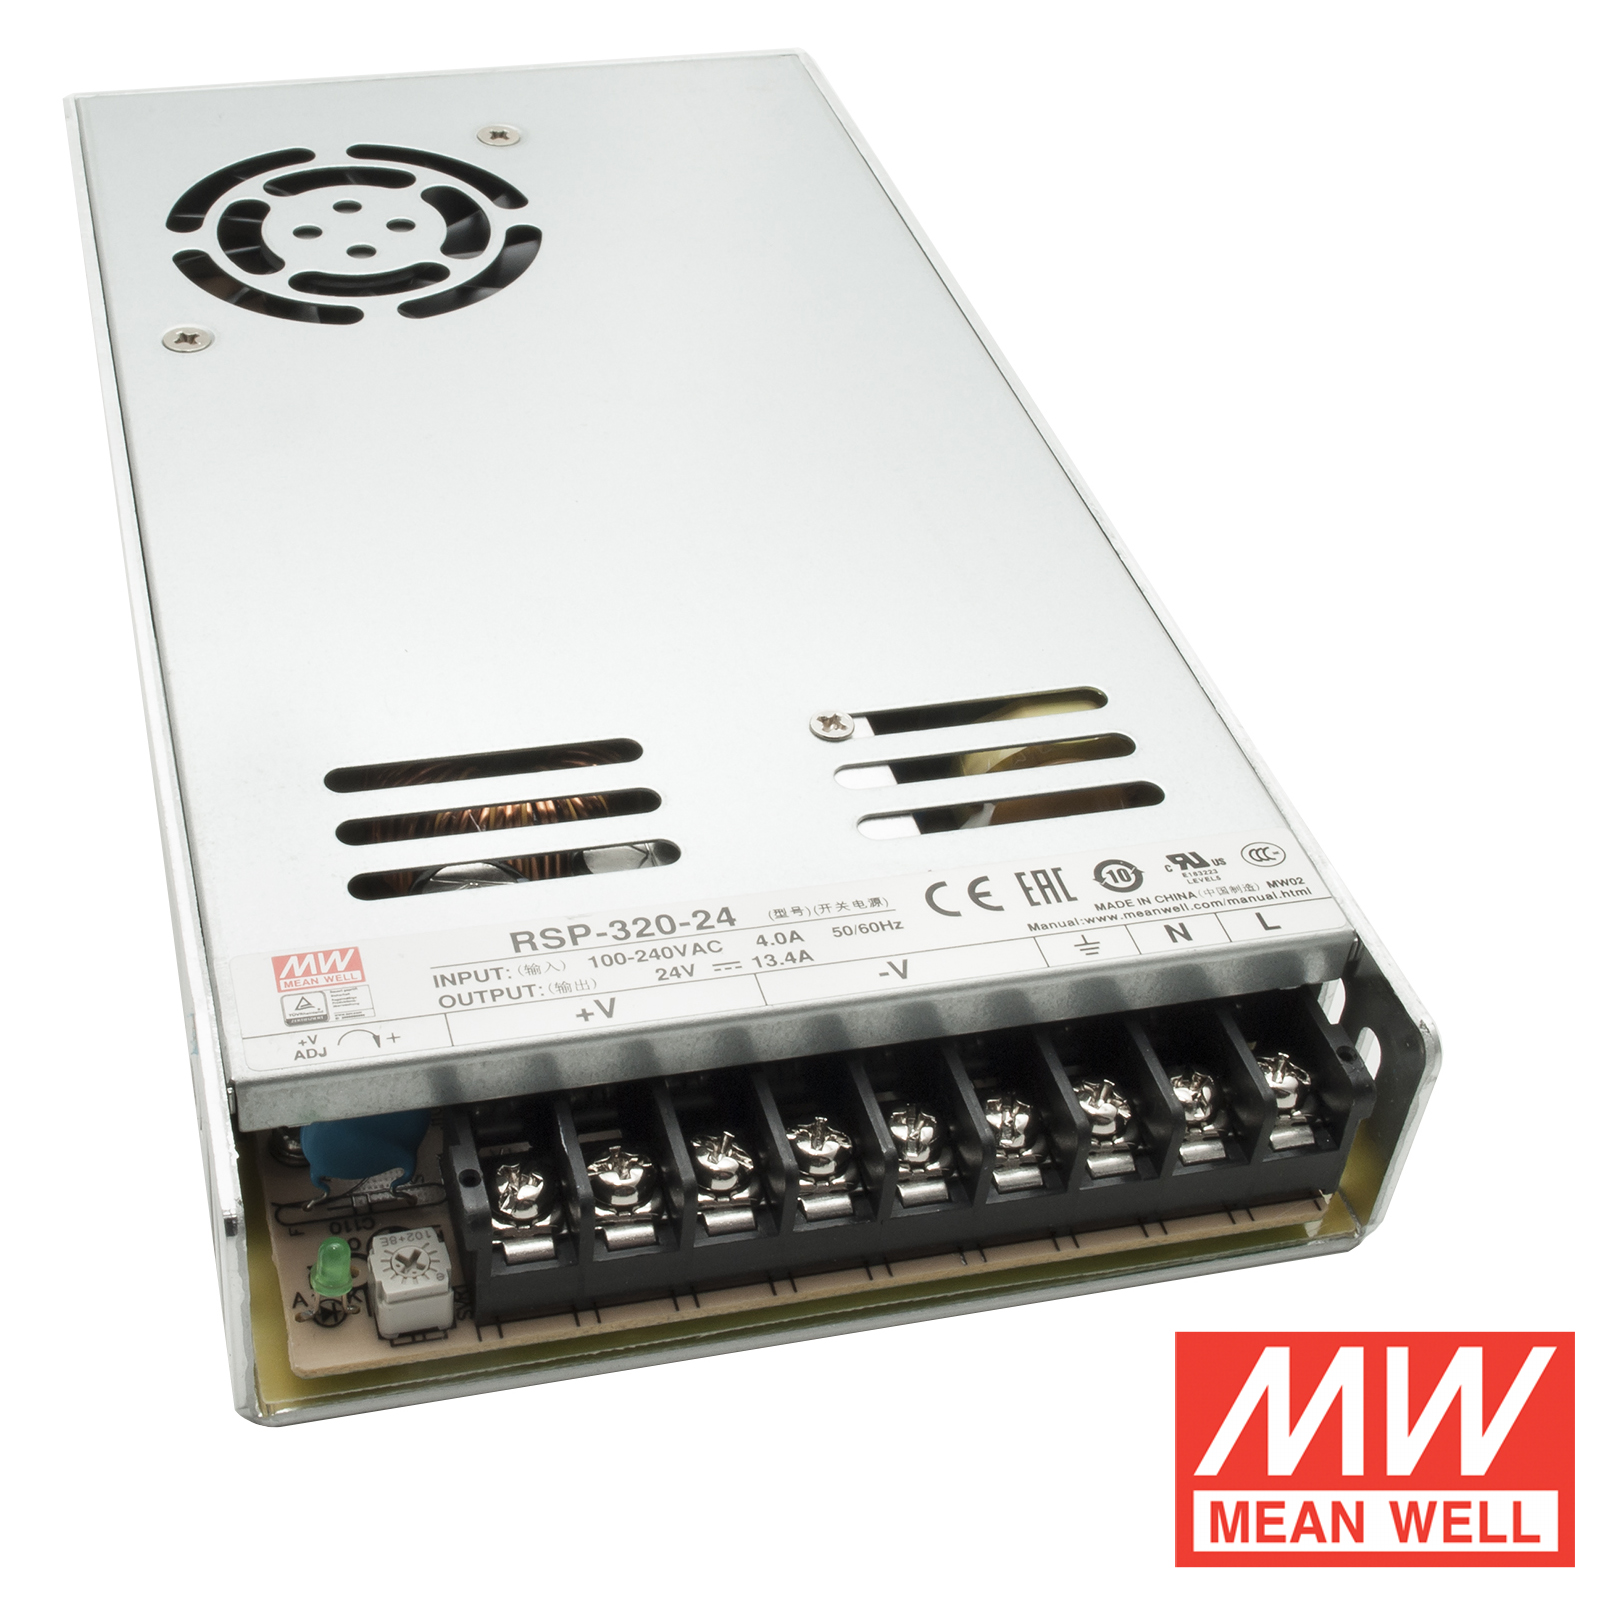 Stabilized power supply pro 320W 24V 13.4 fan-MeanWell RSP-3200-24 220V